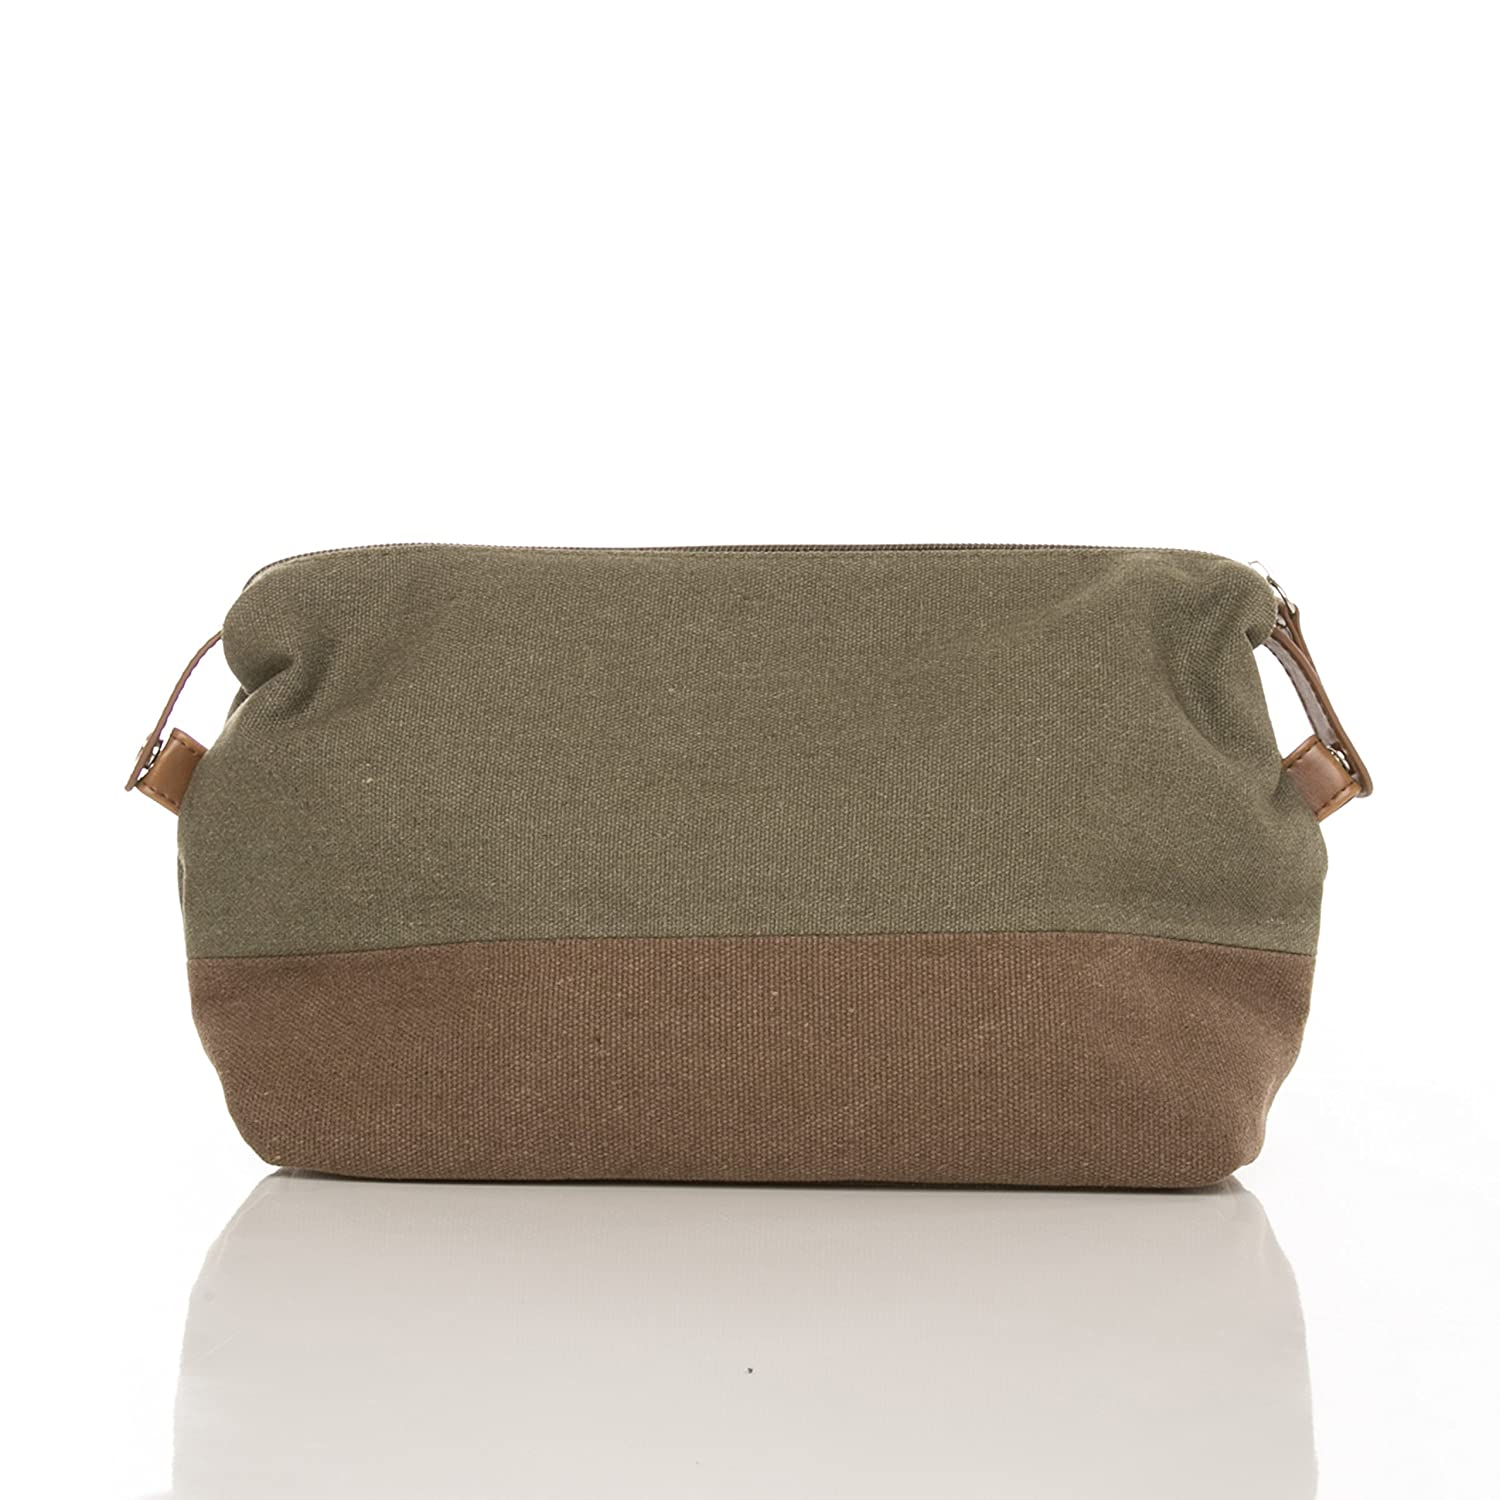 67ff7a21b7 Buy SMB Group Original Toiletry Bag (Military Green   Brown) Online at Low  Prices in India - Amazon.in